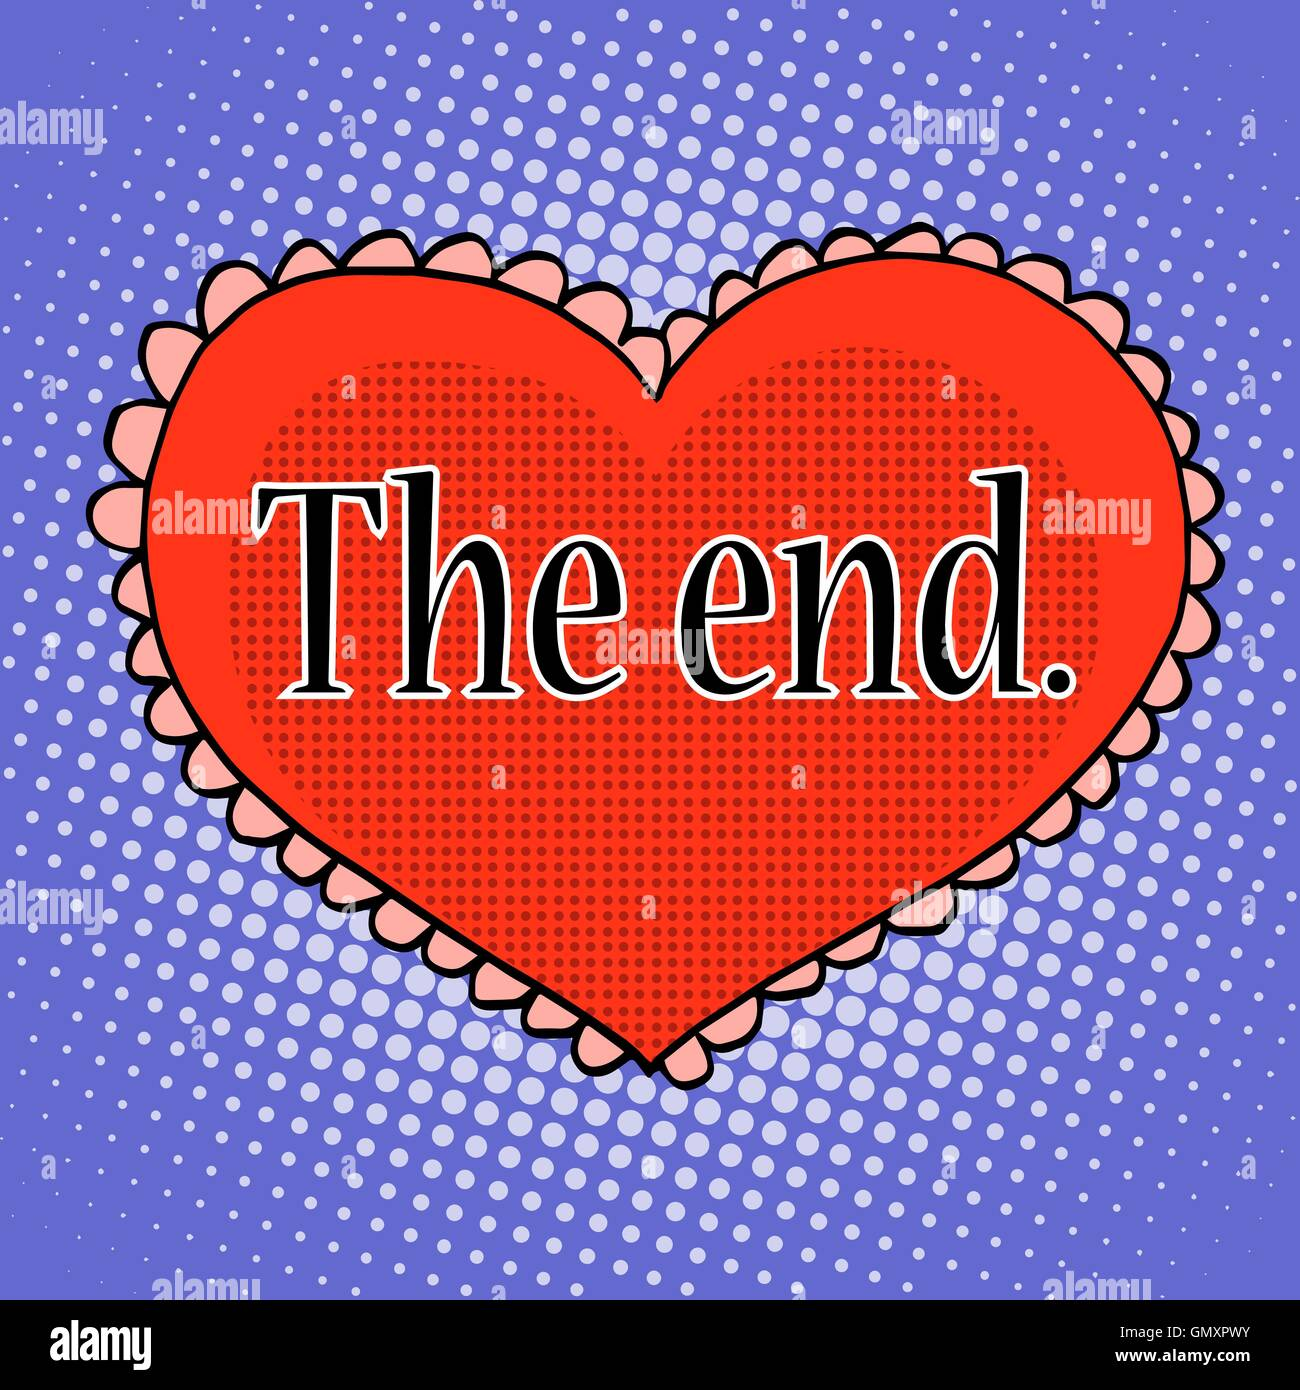 The end of love red heart - Stock Image